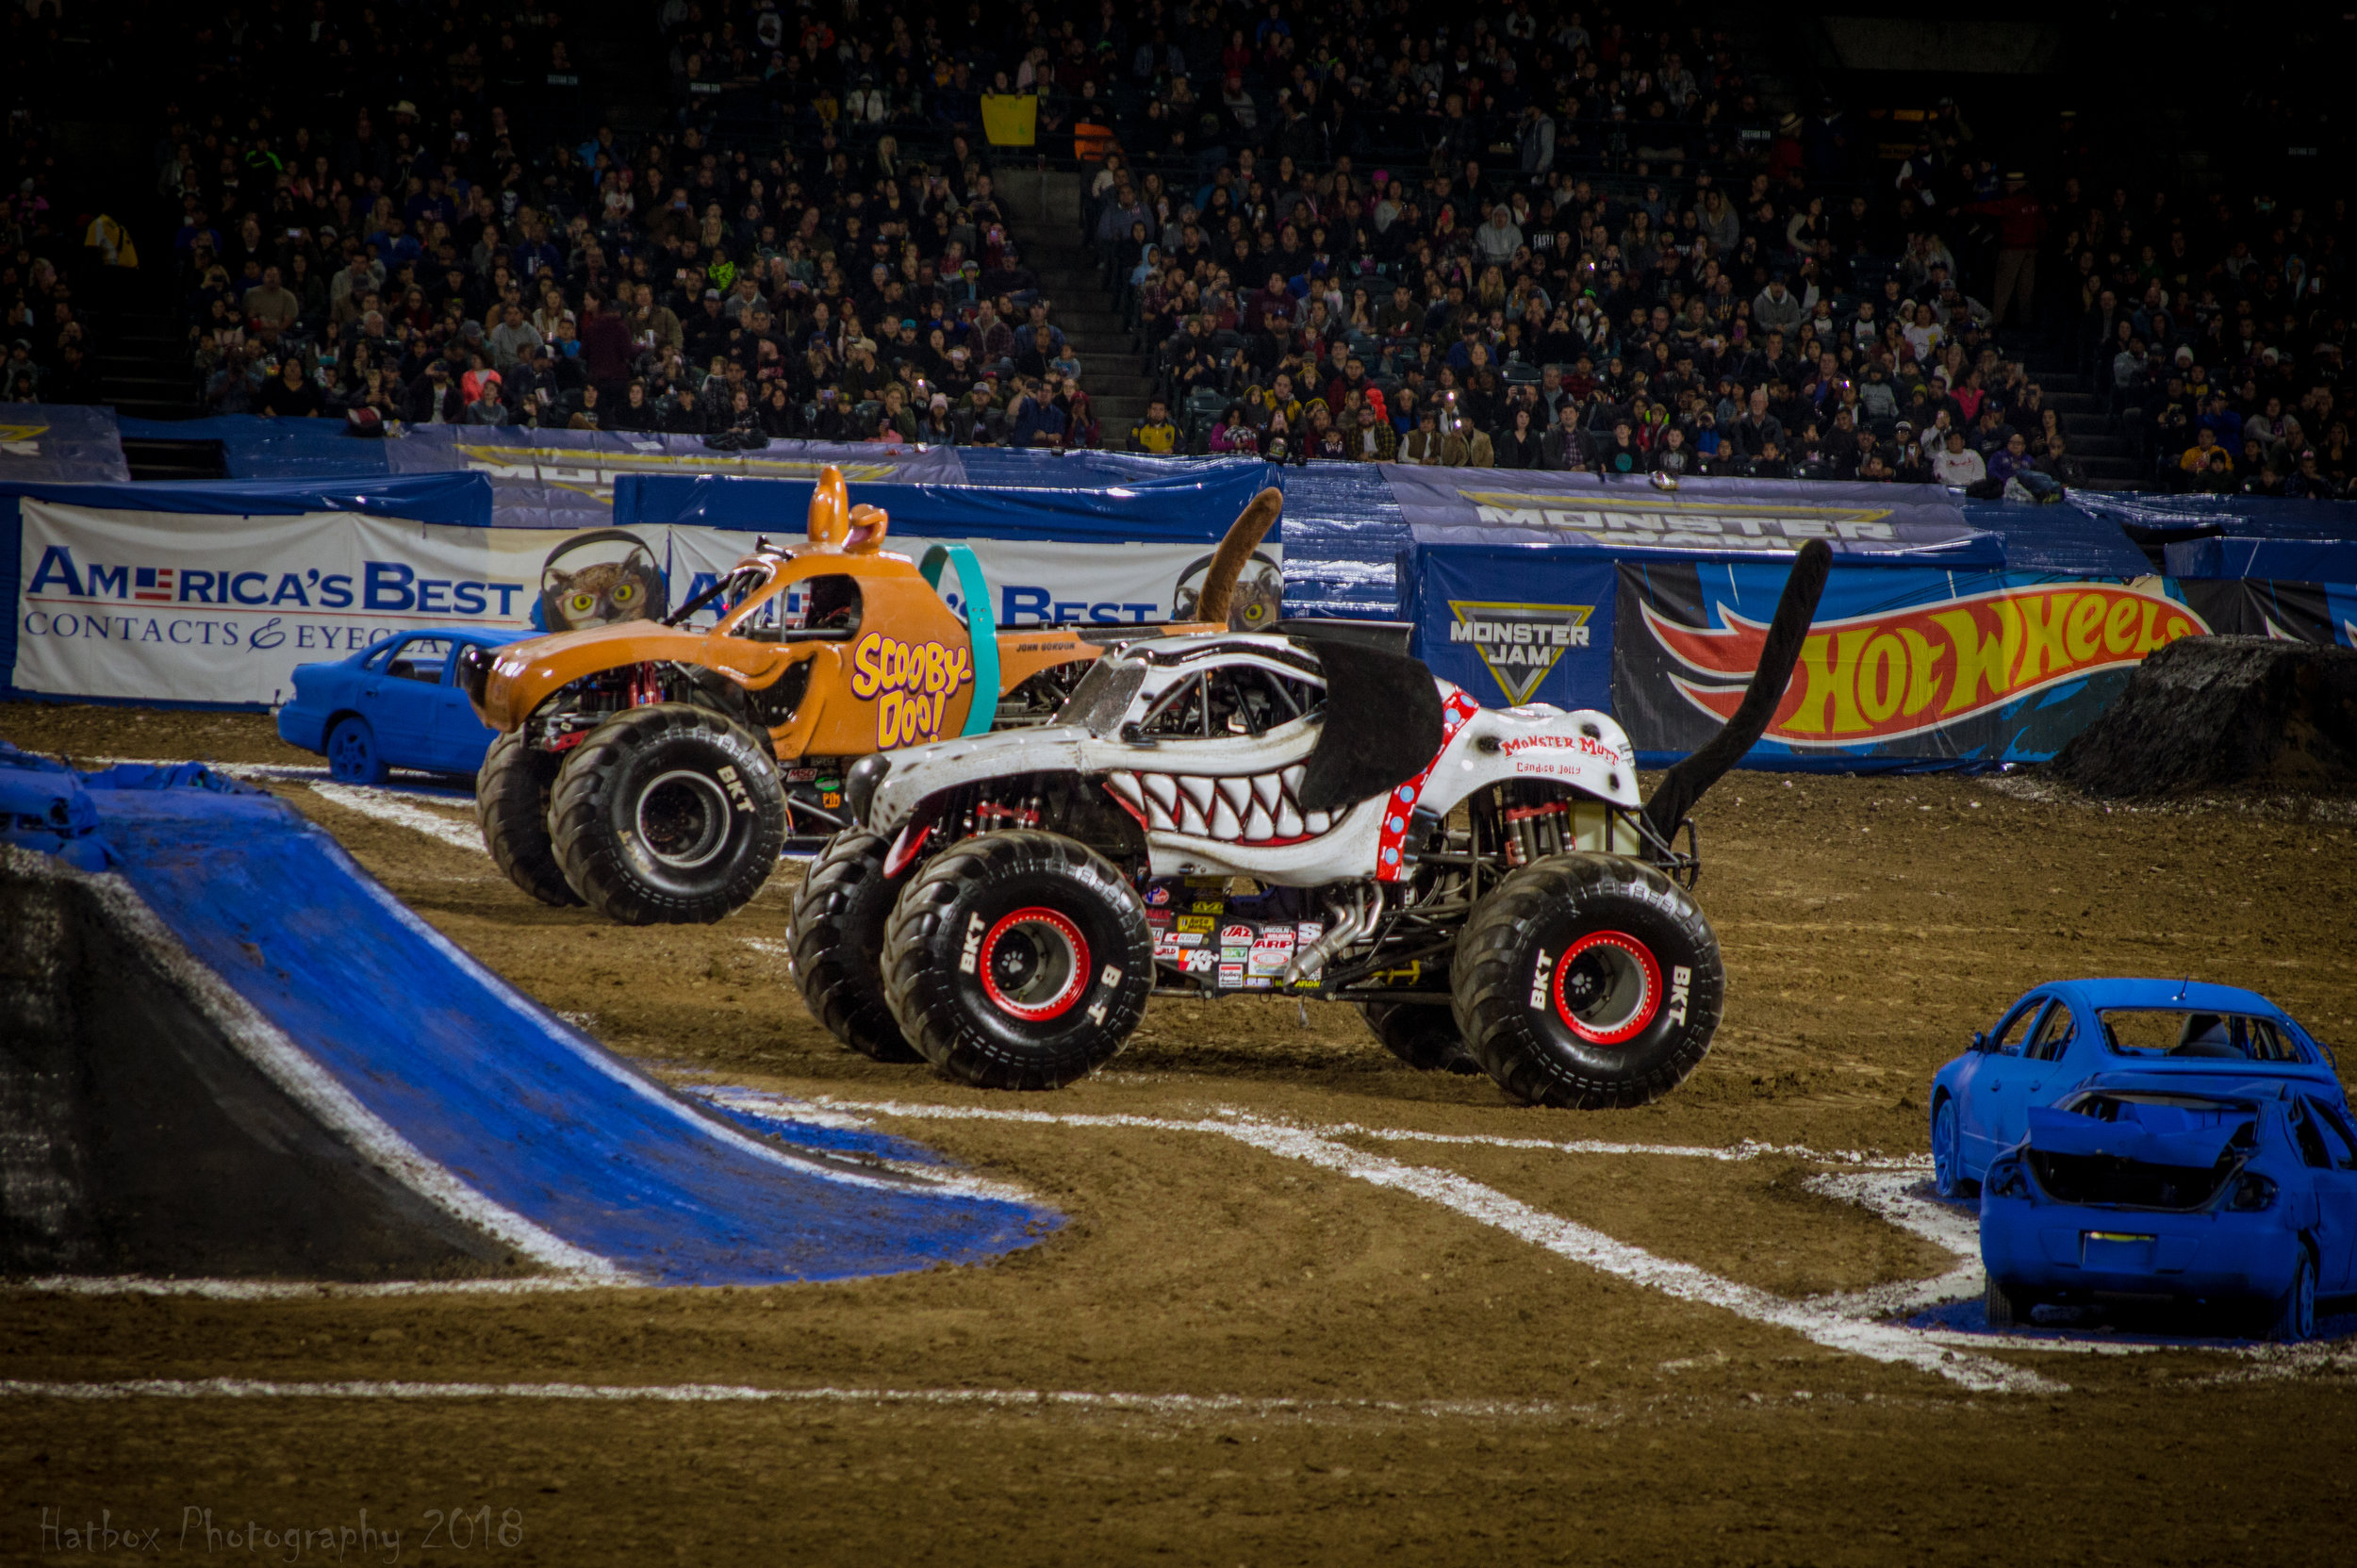 Monster Mutt Dalmatian driven by Candice Jolly gets ready to face Scooby Doo driven by John Gordon. Learn more about Monster Mutt Dalmatian at: https://www.monsterjam.com/en-US/trucks/monster-mutt-dalmatian  and learn more about Scooby Doo at: https://www.monsterjam.com/en-US/trucks/scooby-doo